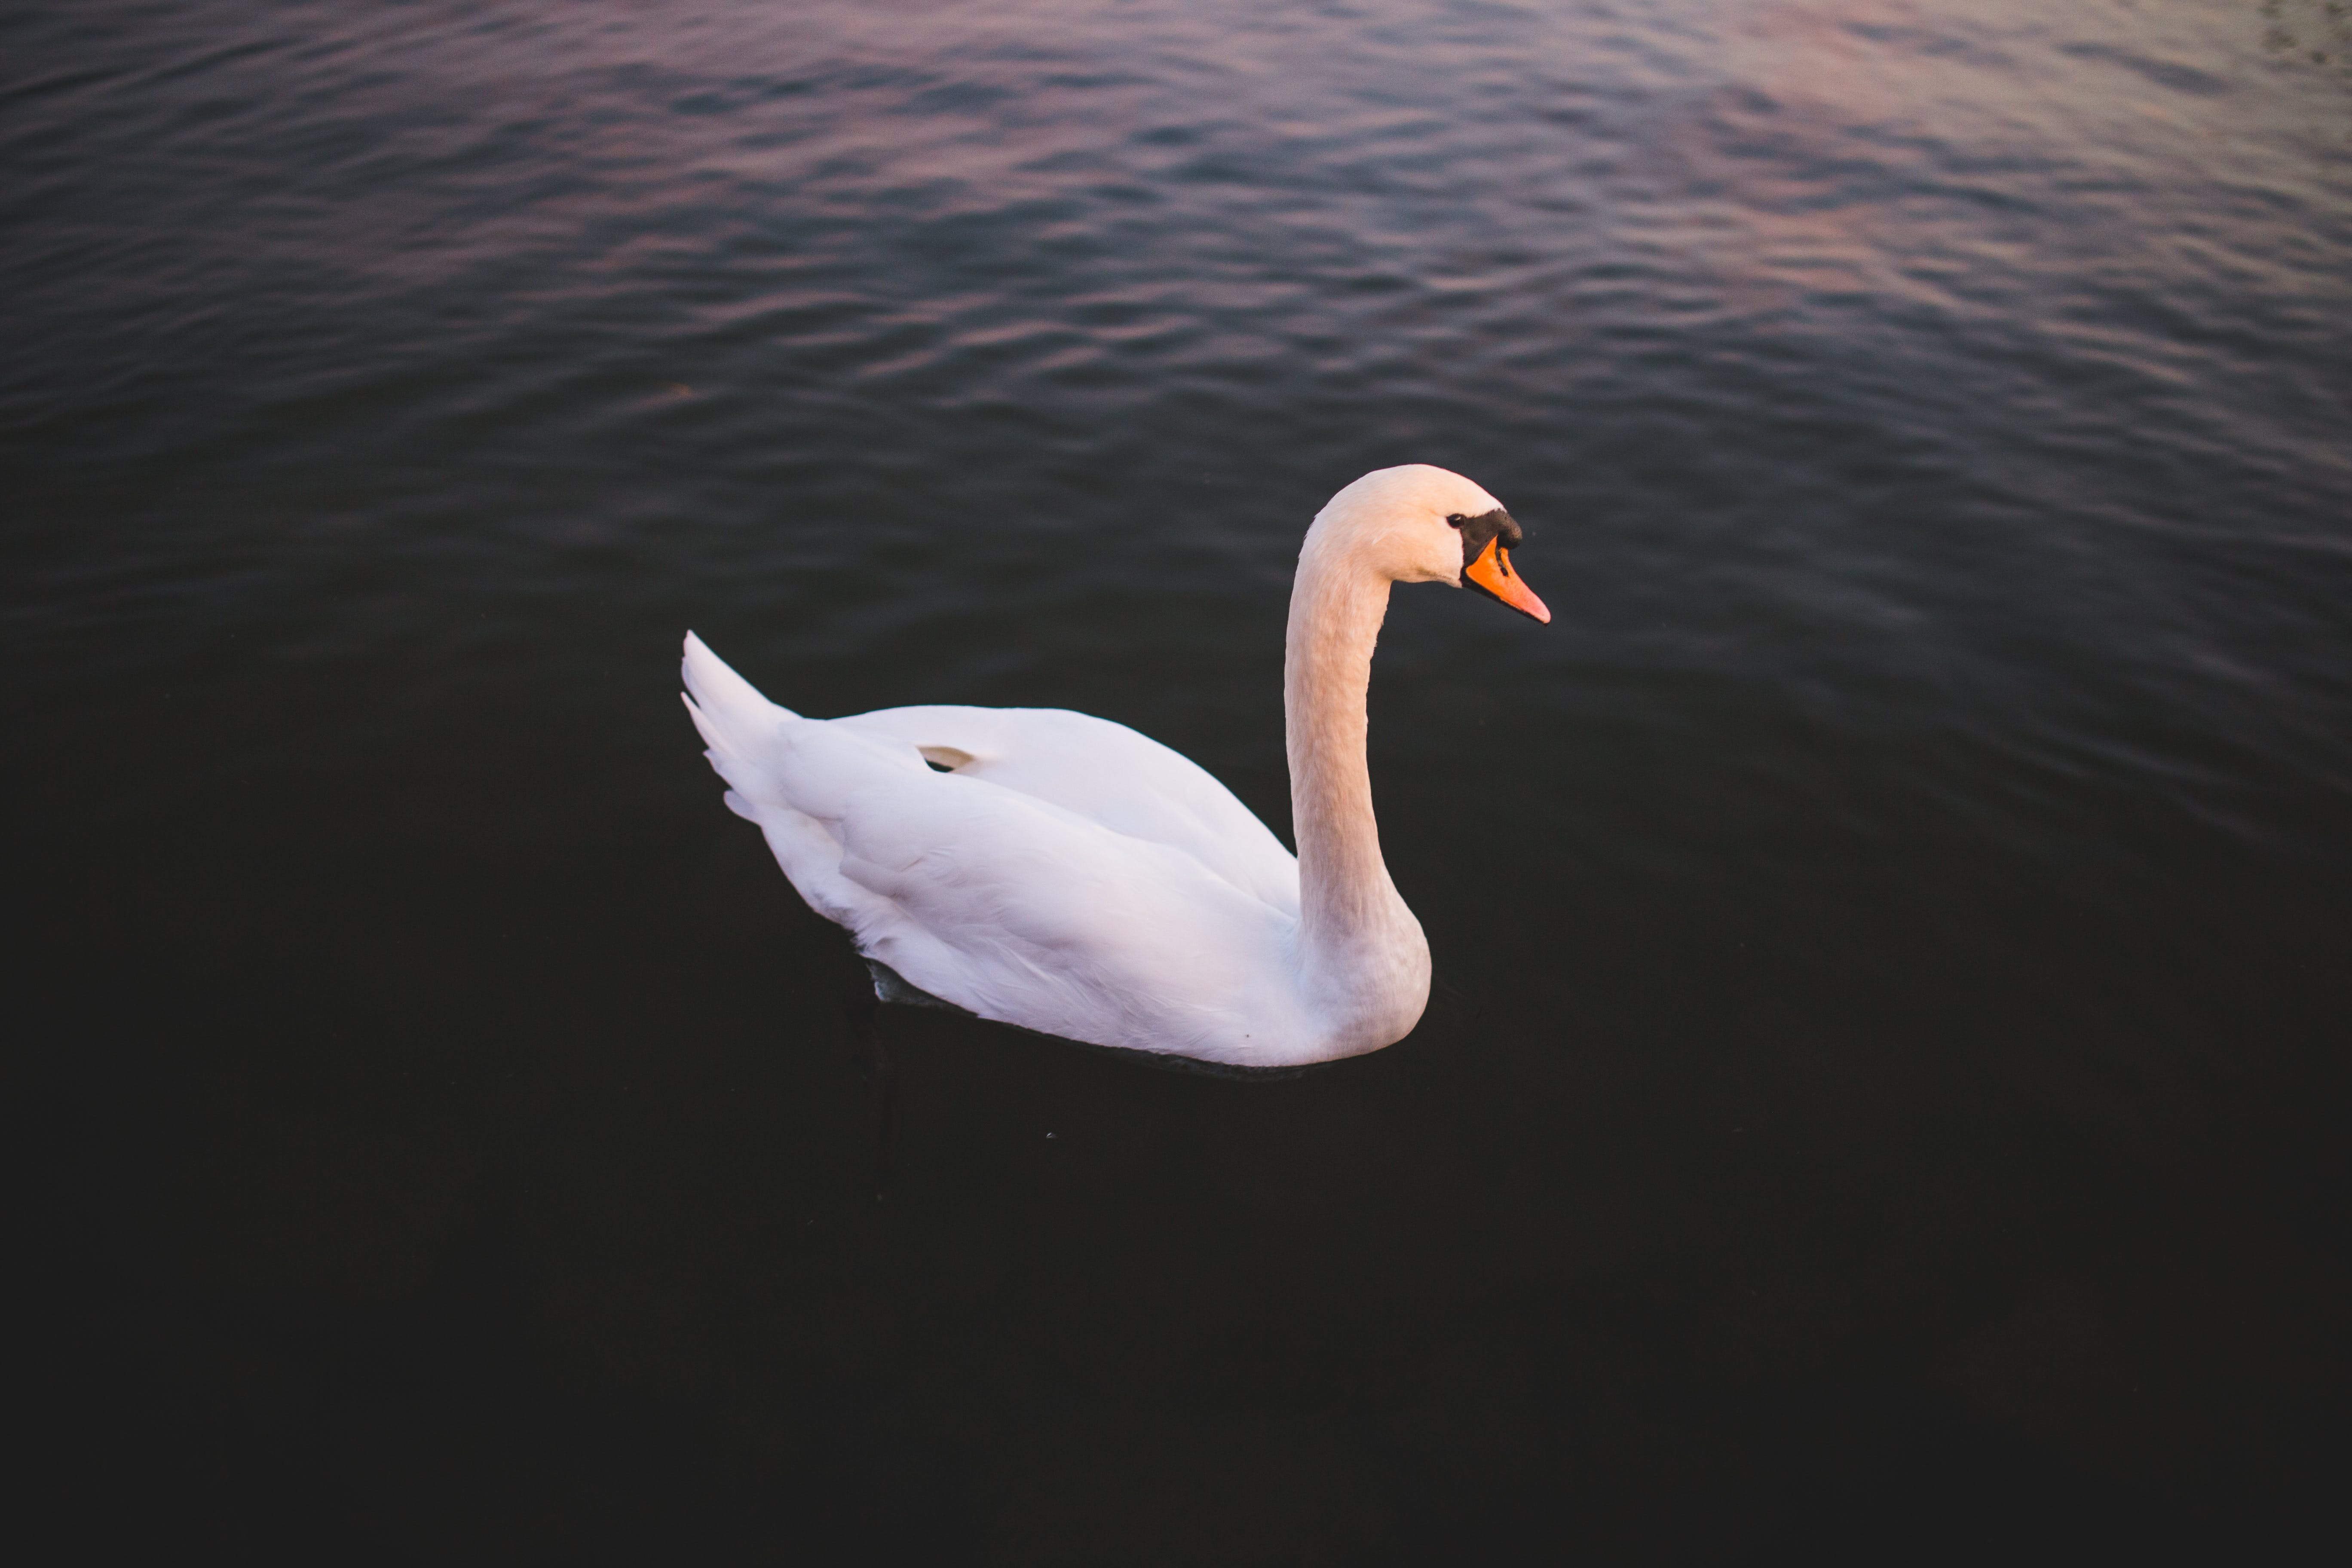 White Swan on Body of Water at Golden Hour